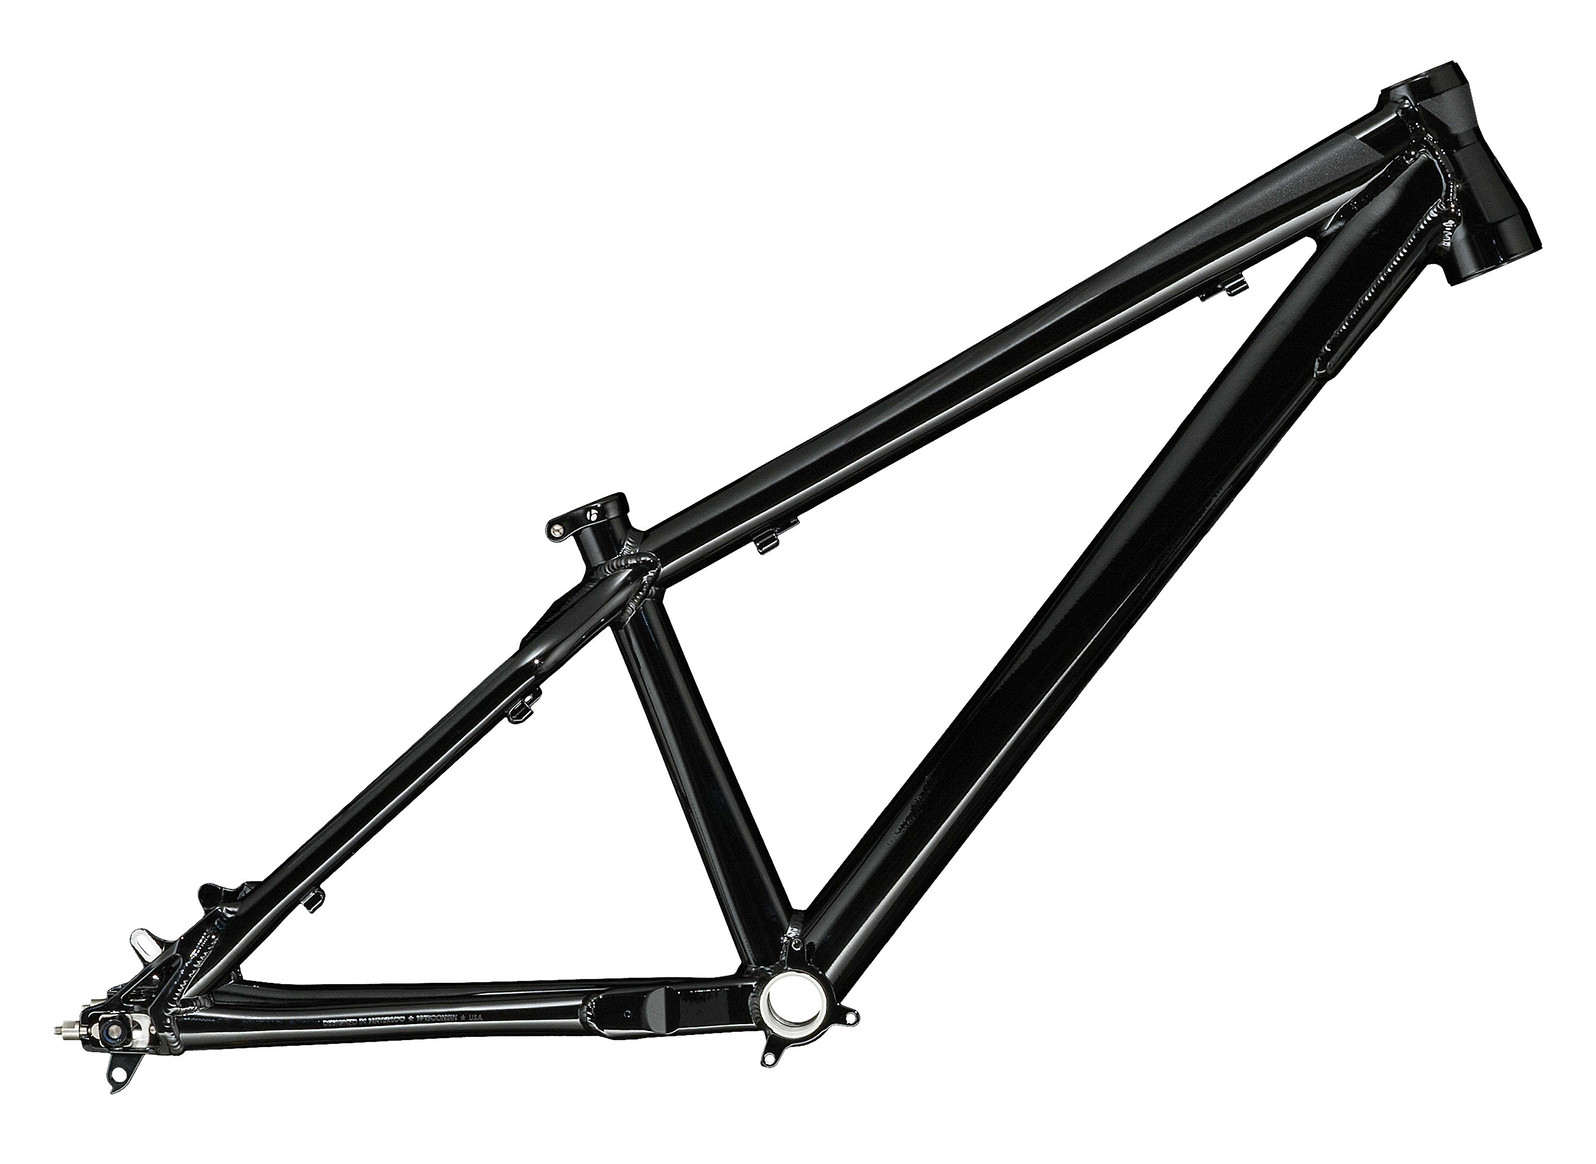 Trek Ticket DJ Frame - Reviews, Comparisons, Specs - Mountain Bike ...